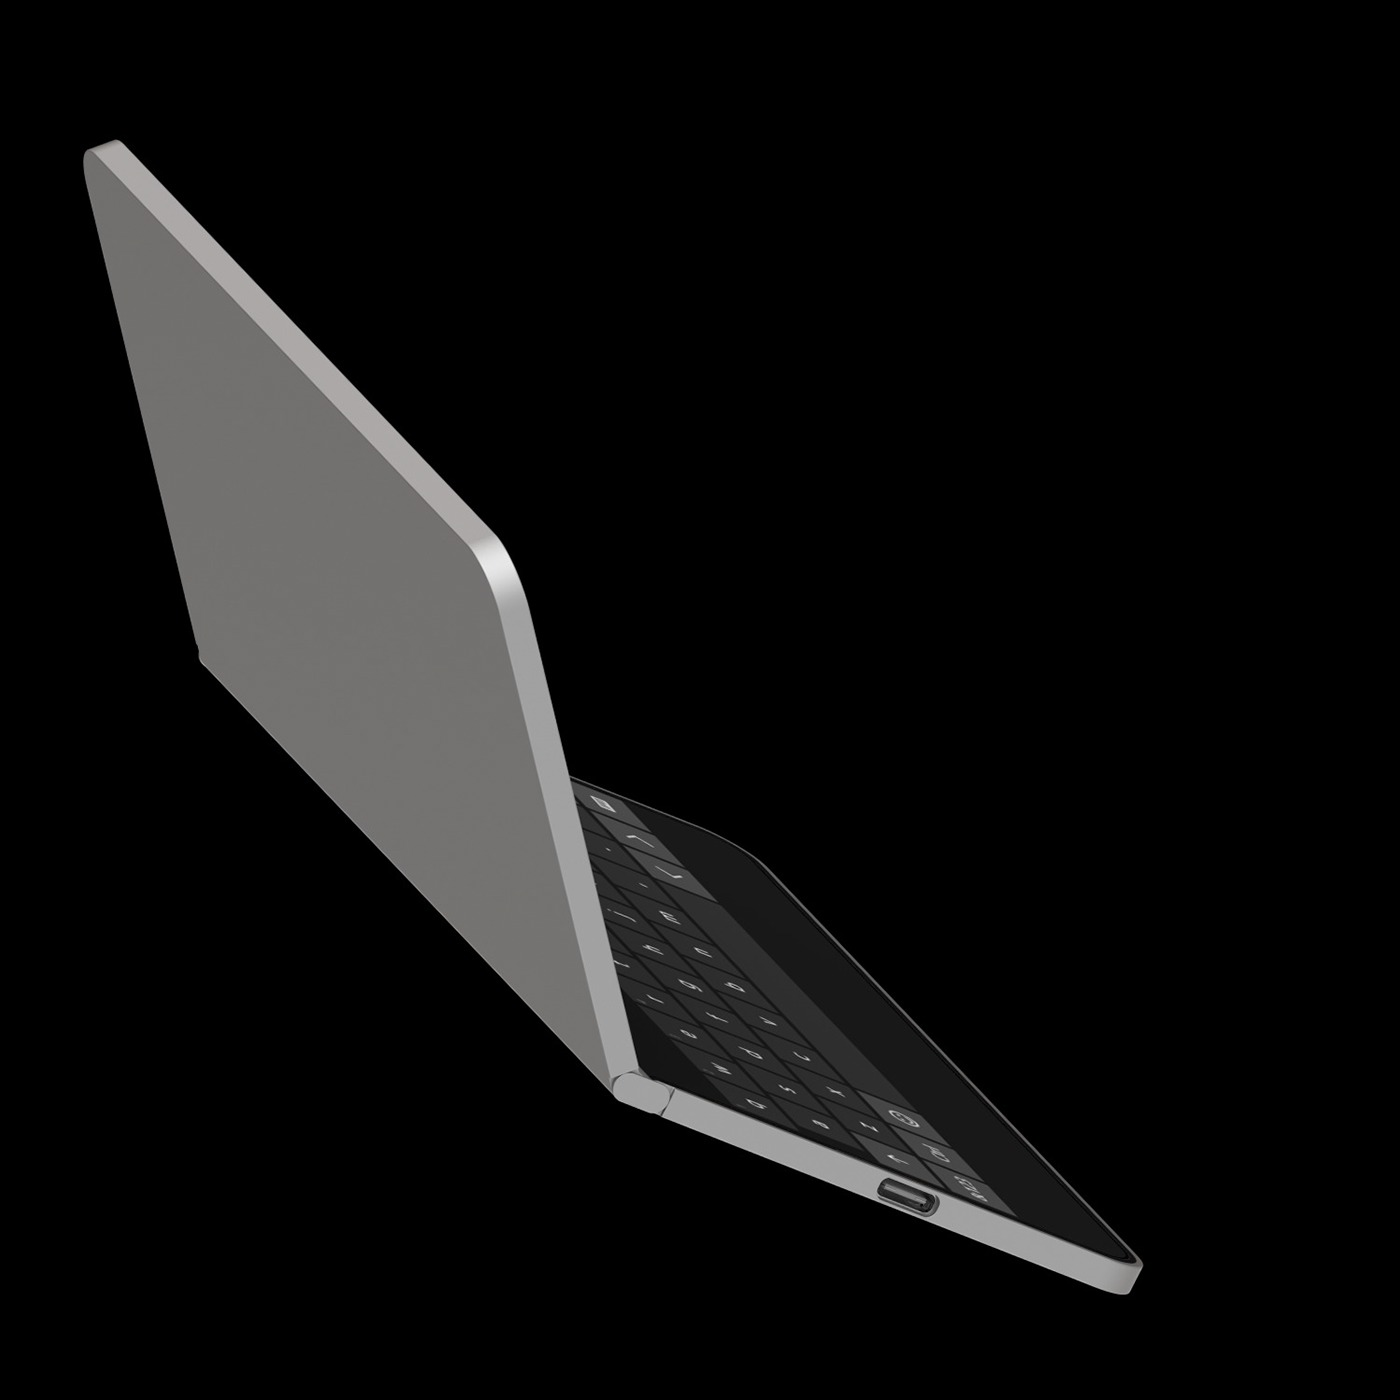 Surface Note Concept 3